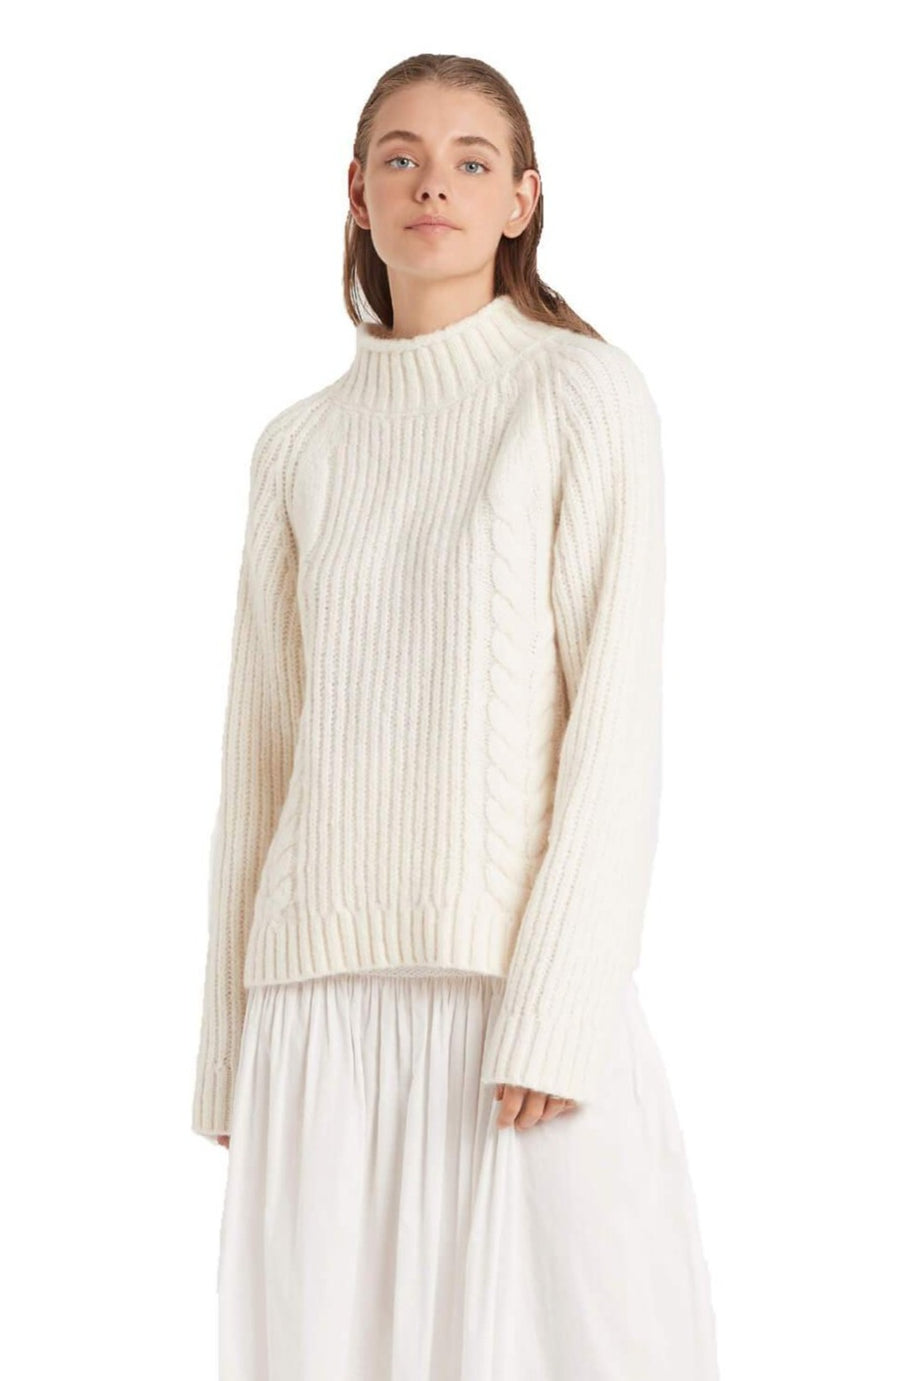 Sir The Label Matti Cable Sweater from The New Trend